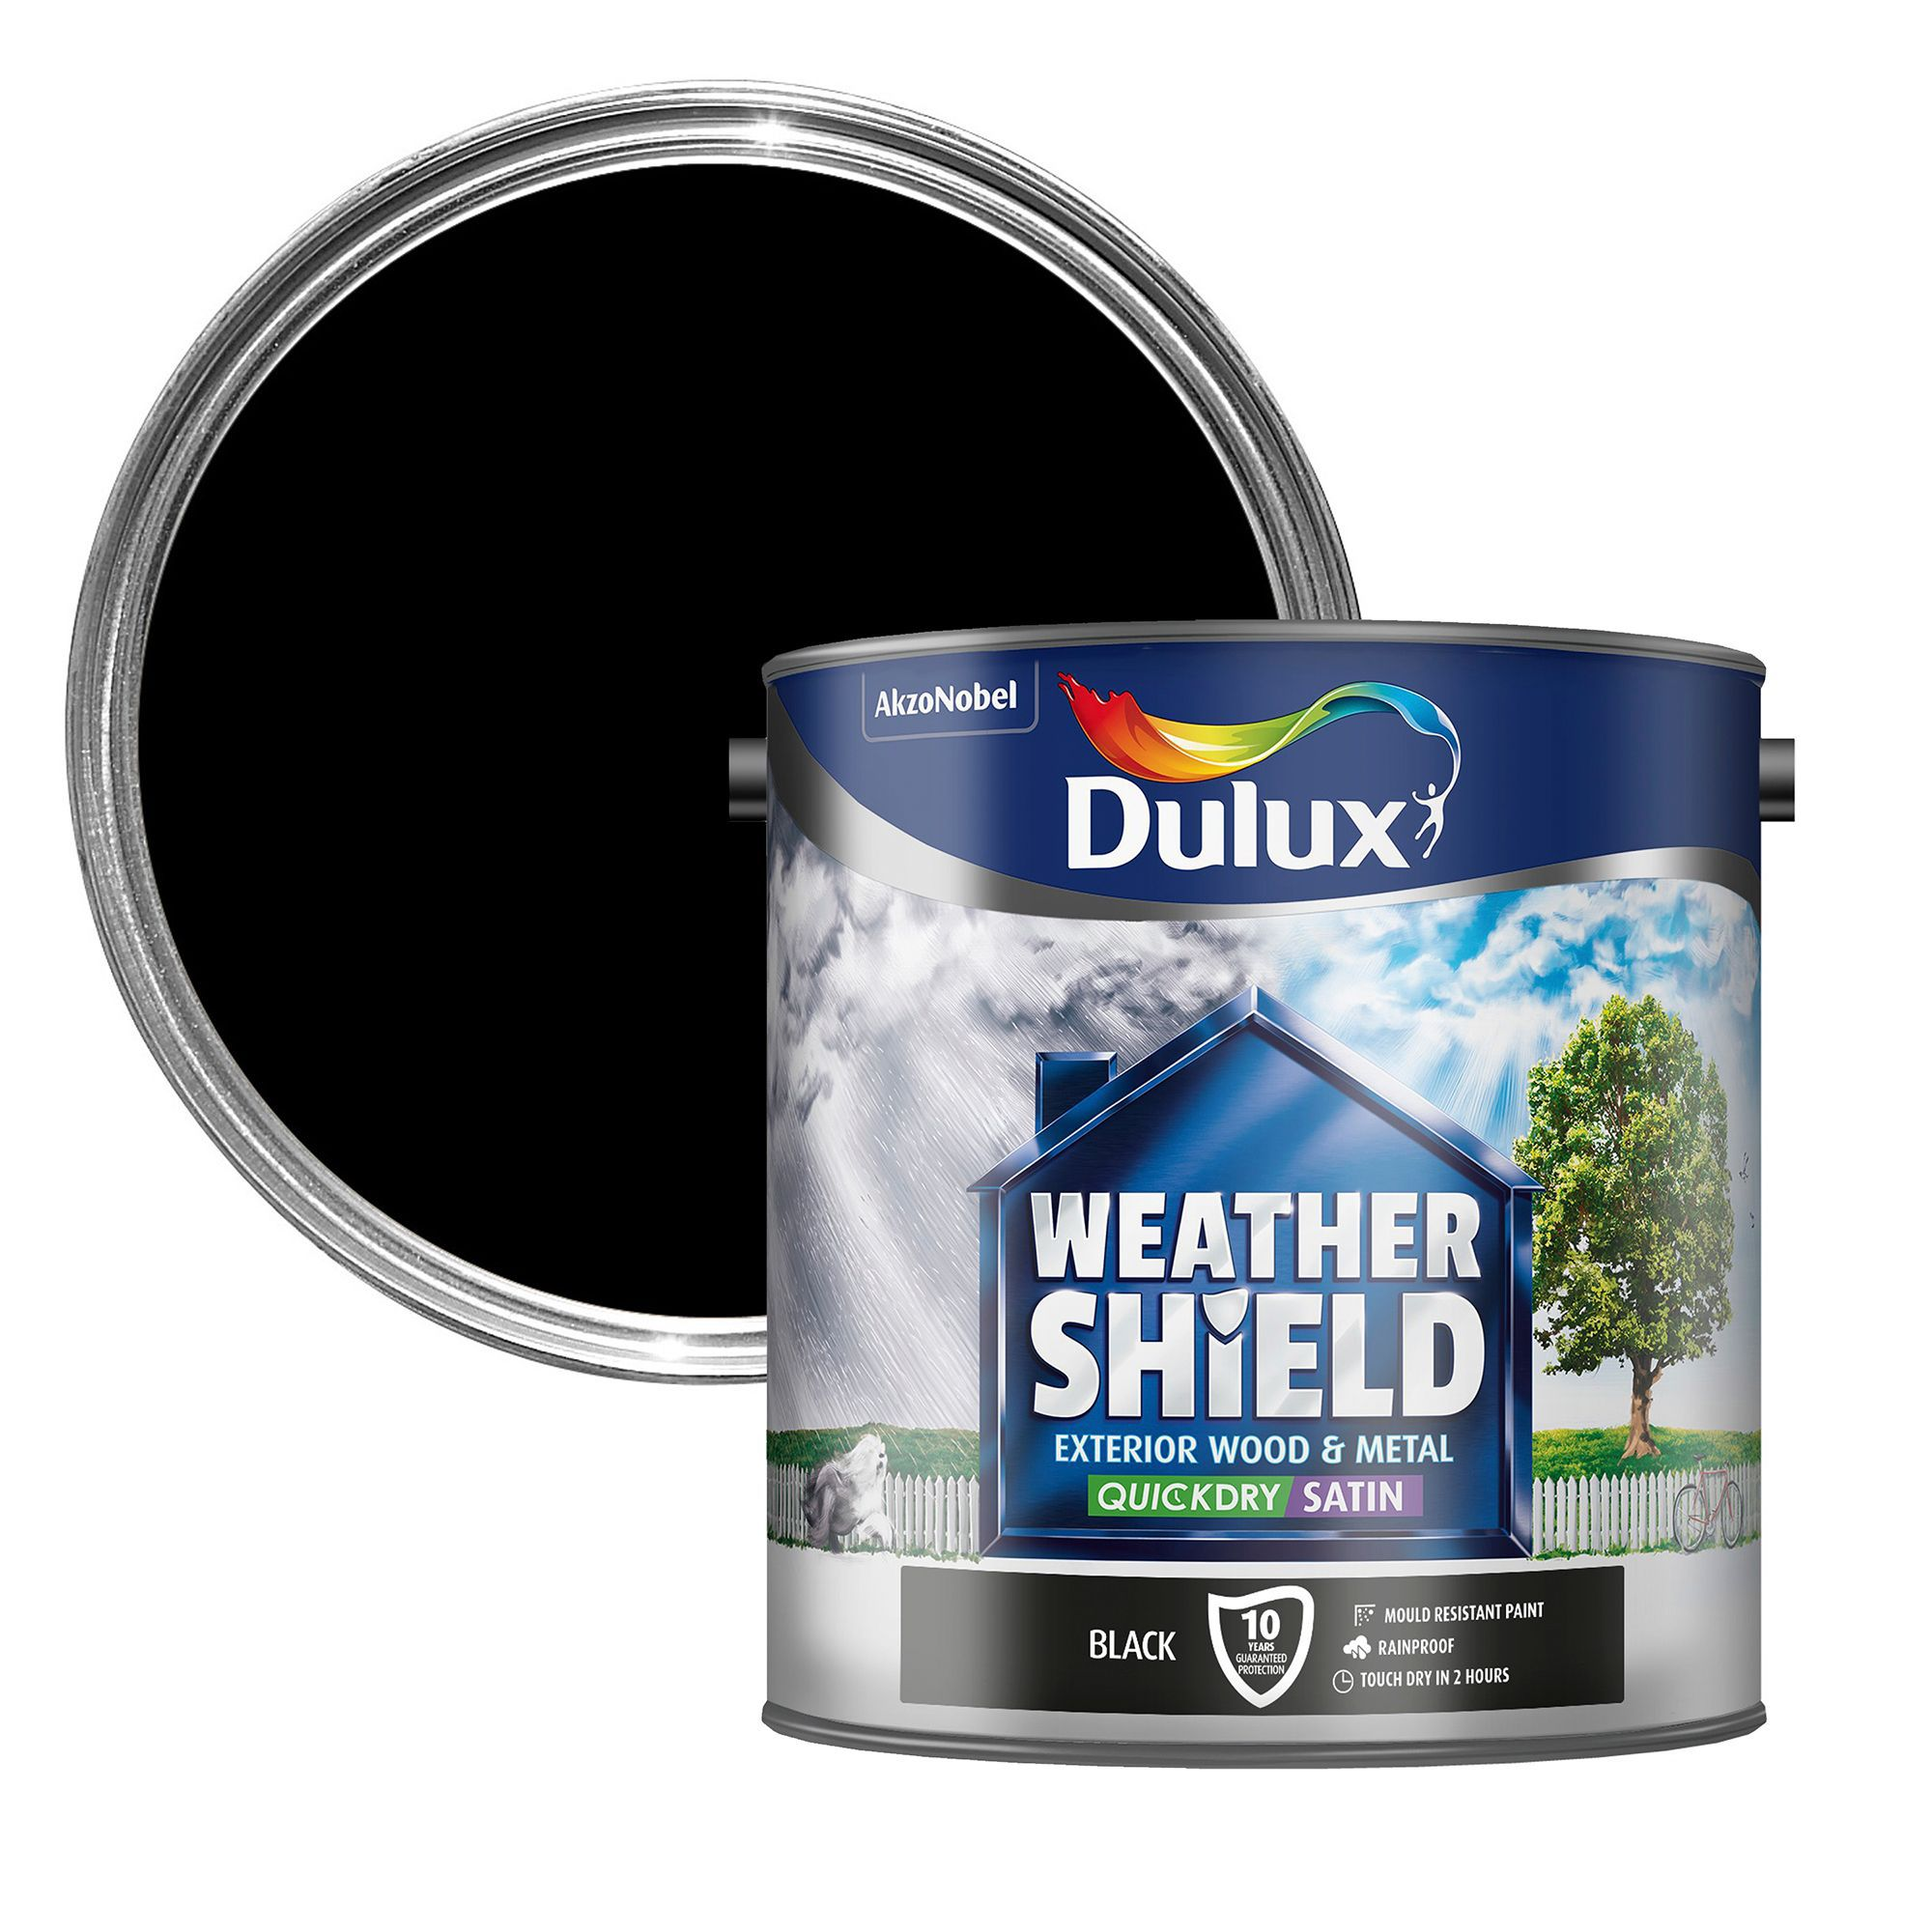 100 Gloss Paint Dulux Gloss Black Paint 2 5 Litre Gloss Top Semi Gloss Extra Bright 2l Mitre 10